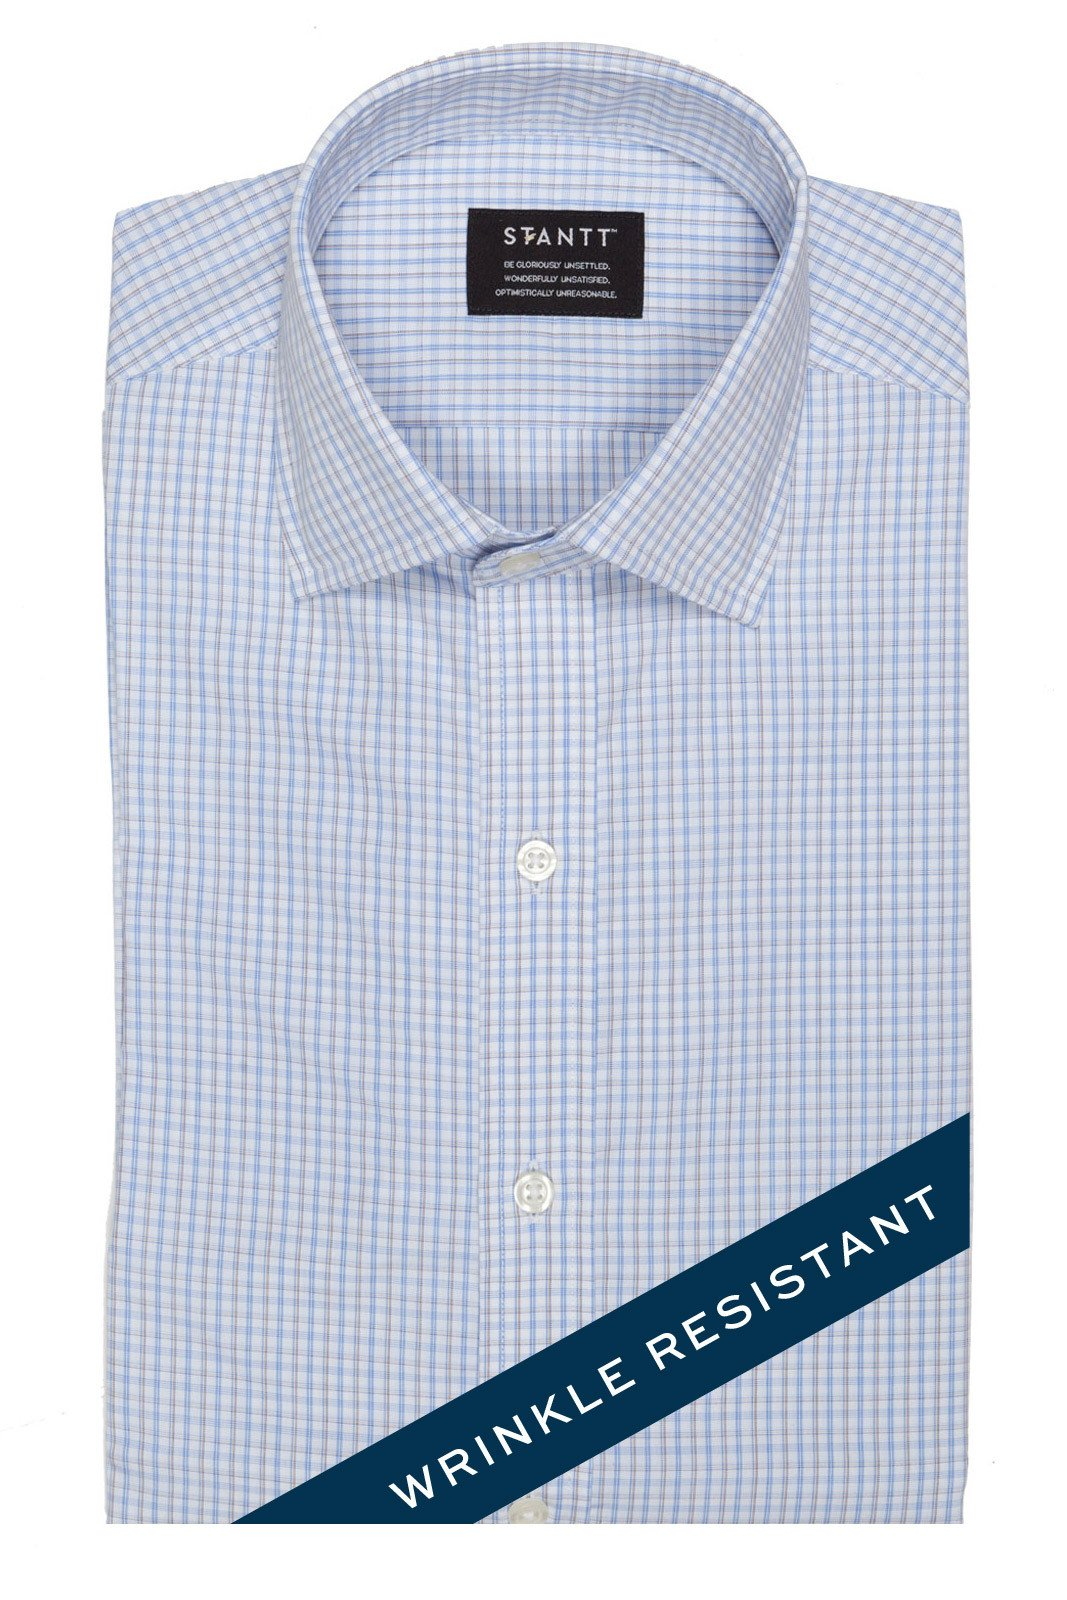 Wrinkle-Resistant Light Blue and Brown Bordered Tattersall: Modified-Spread Collar, French Cuff